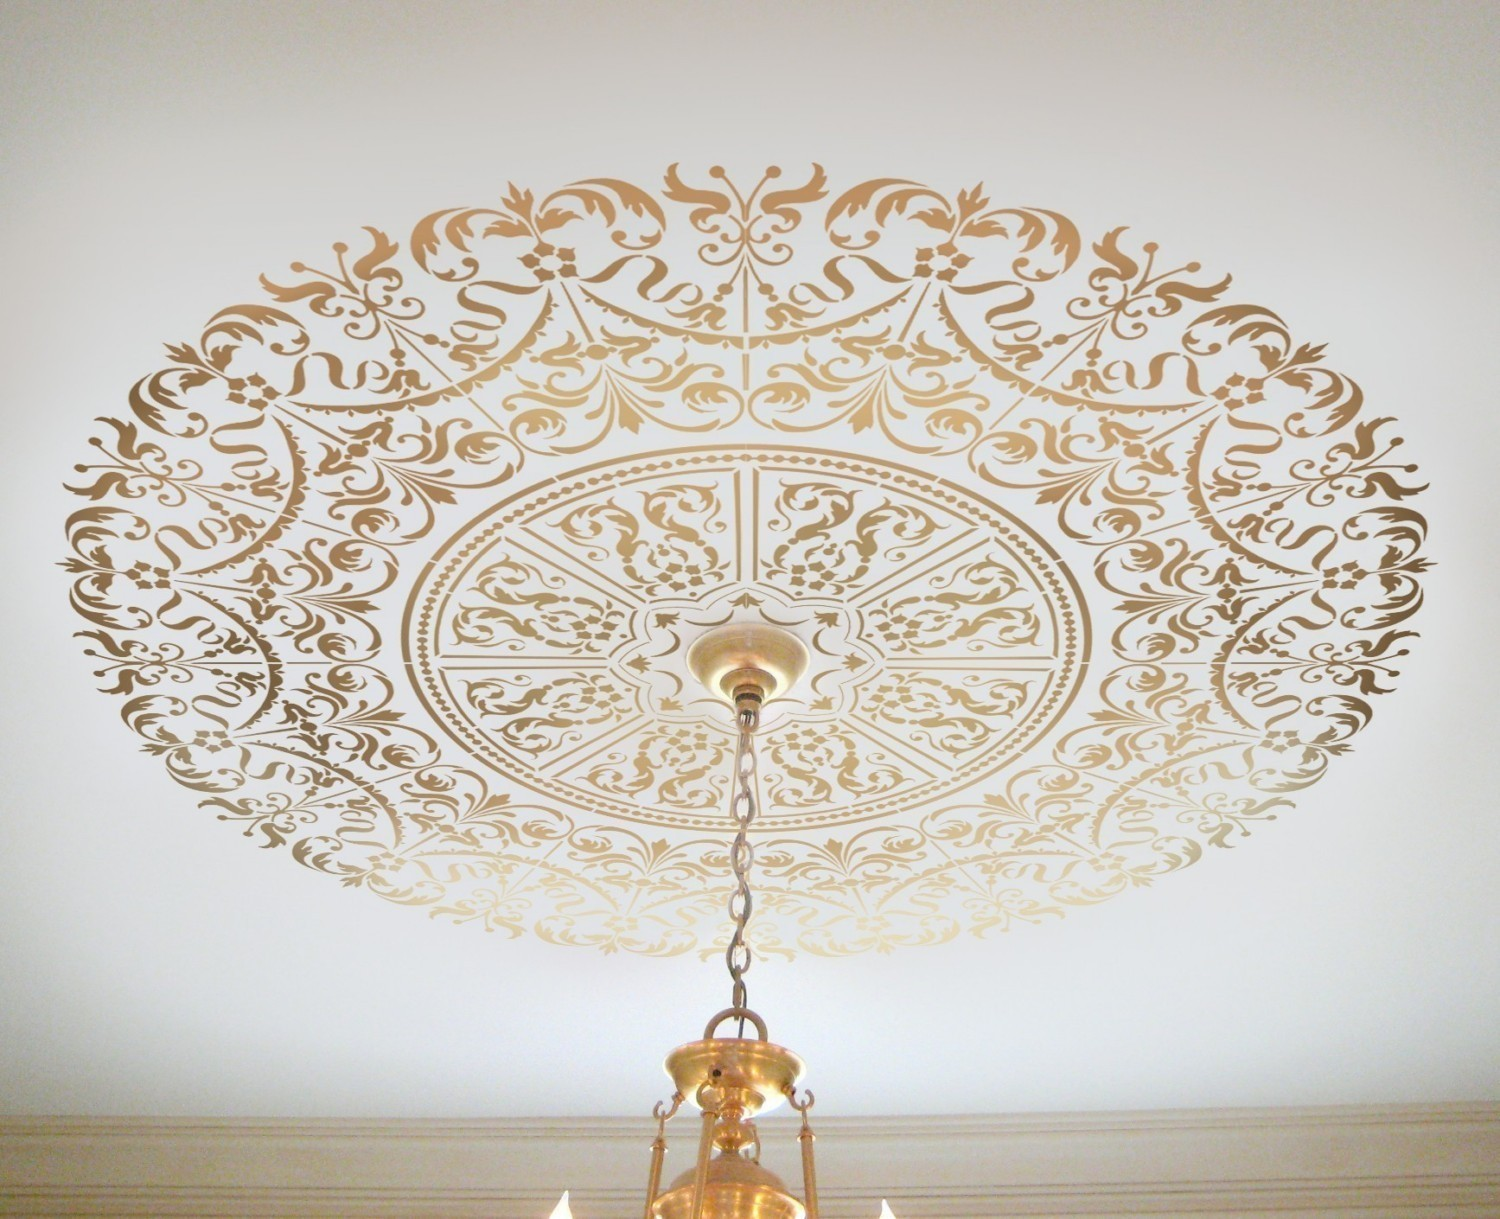 While medallions have always been a popular ceiling accent, you can easily paint your own using a stencil or use a vinyl decal to create an elegant and inspiring ceiling.